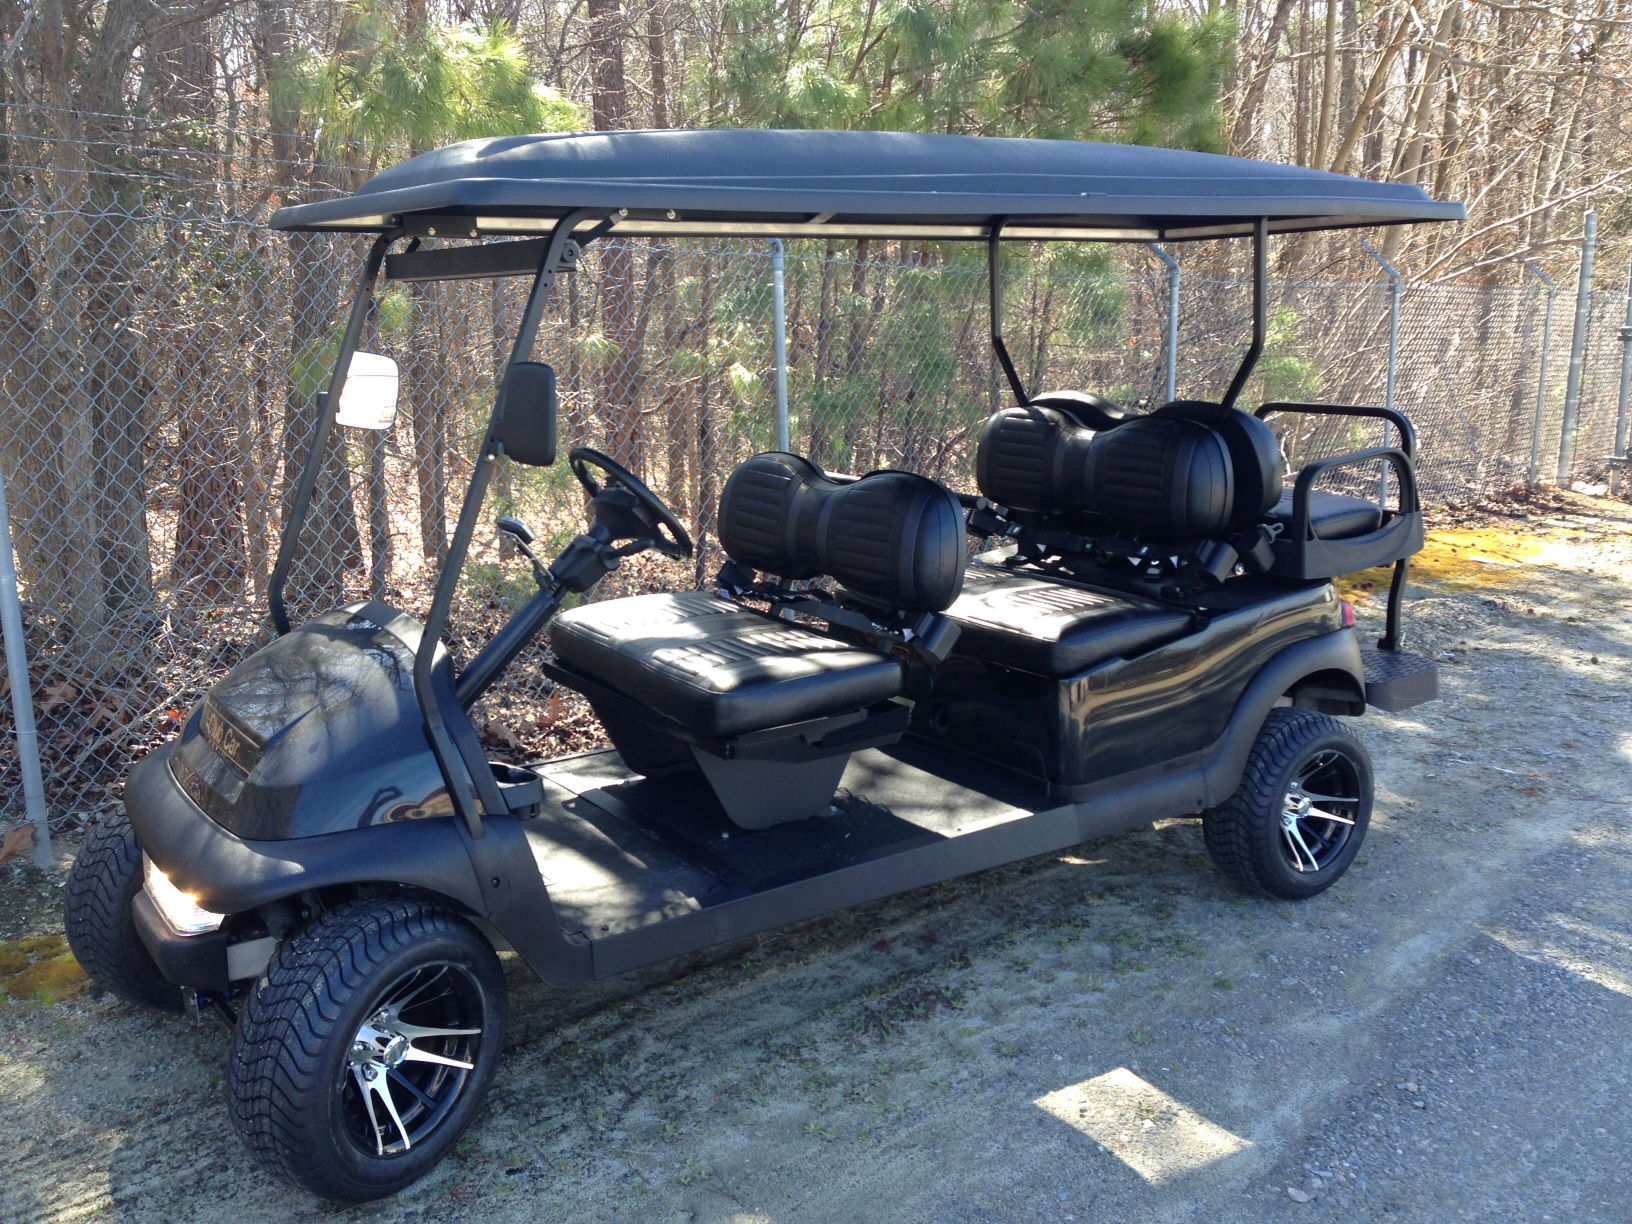 Custom Golf Carts for Sale | Street Legal Golf Carts in ...